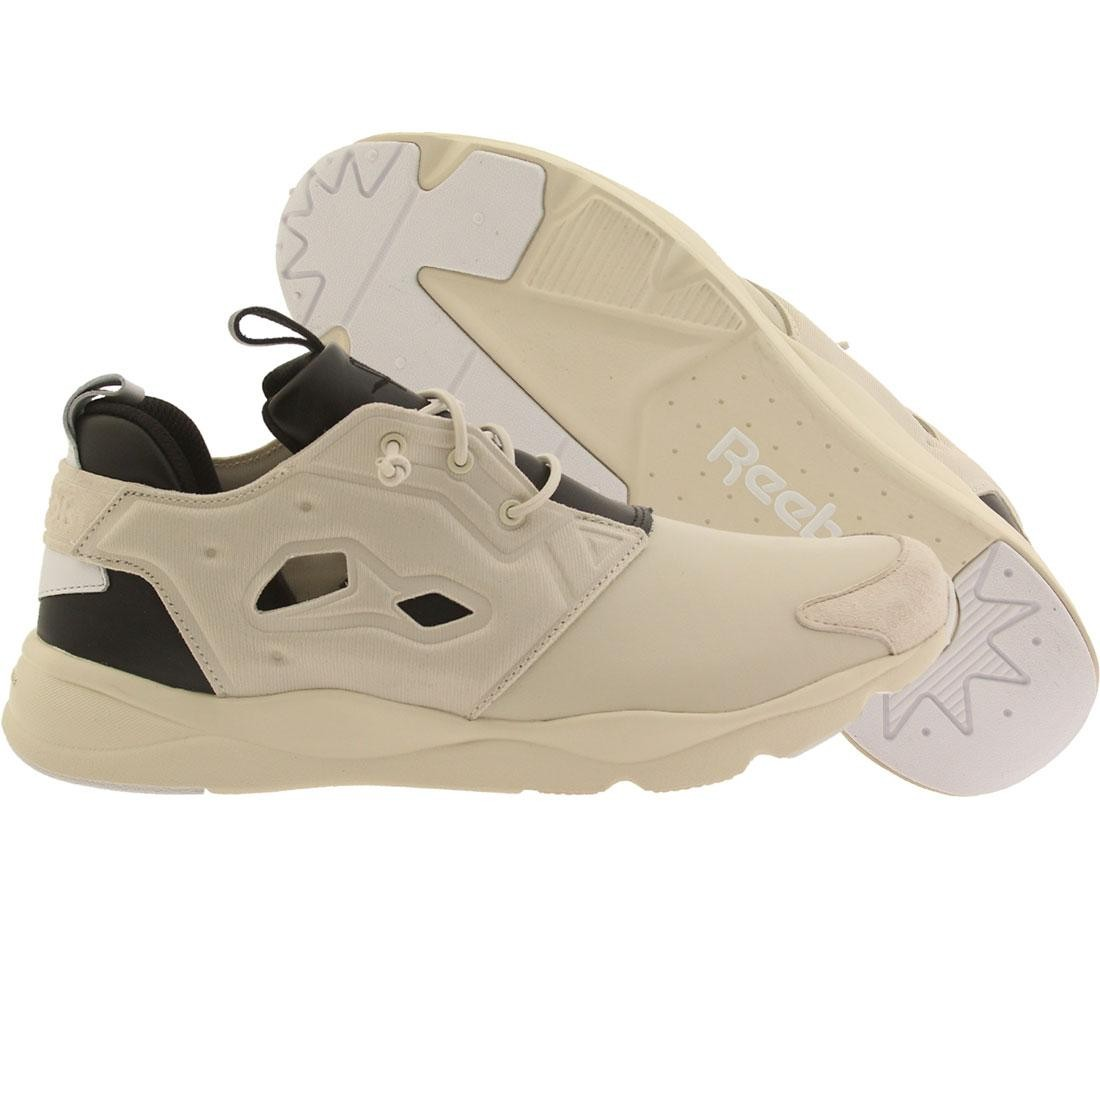 Reebok x Publish Men Furylite (white / oatmeal / black)